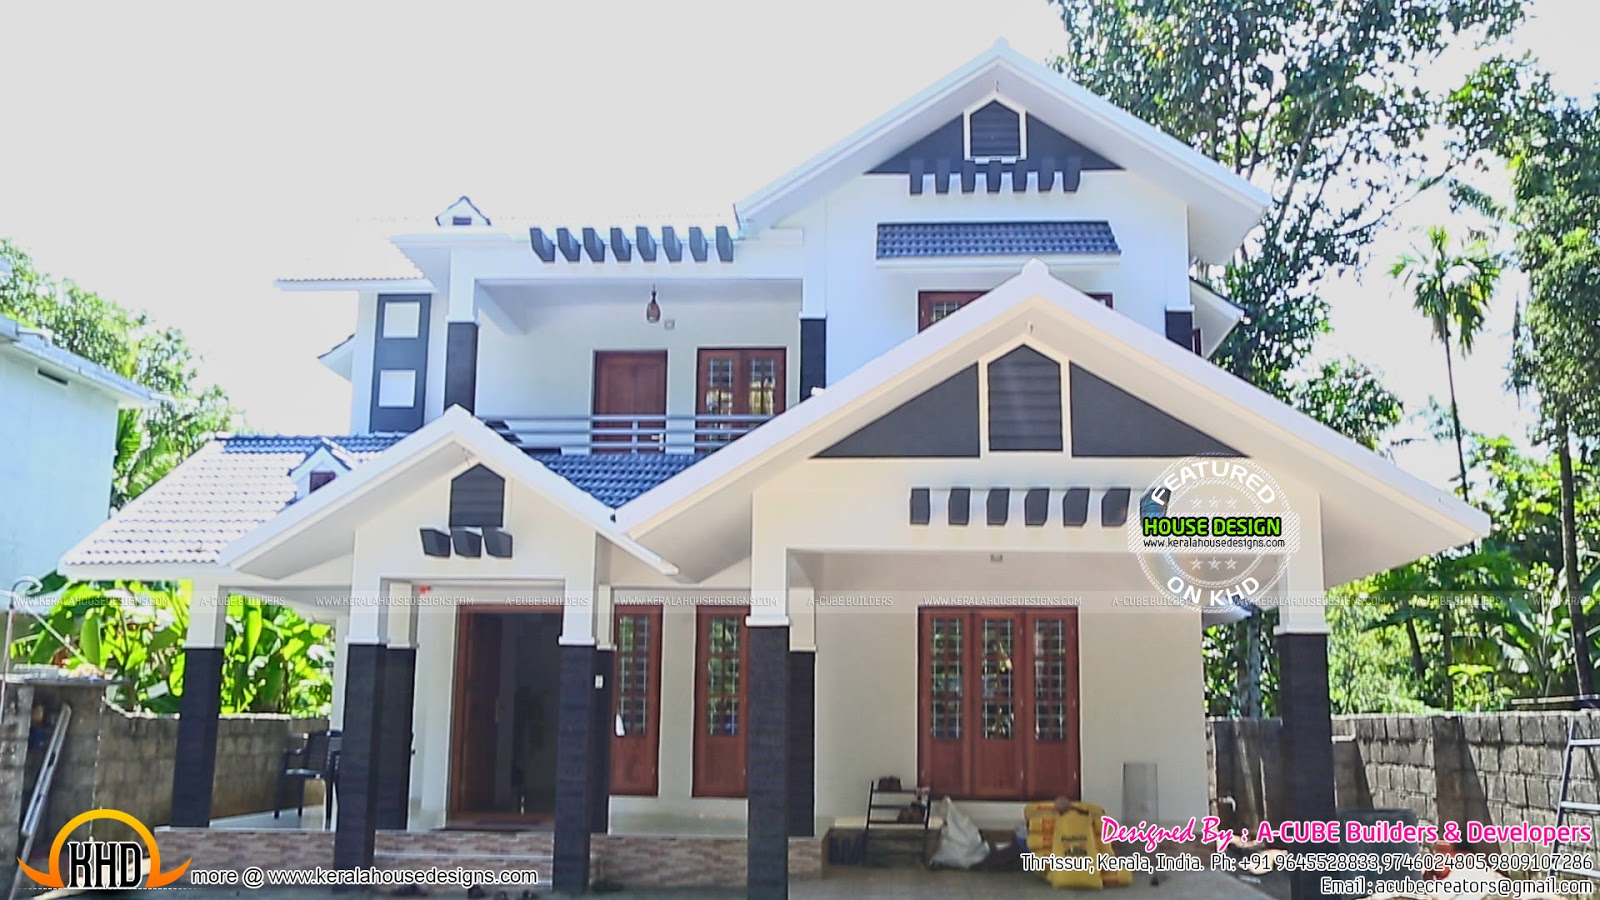 new house plans for 2016 starts here kerala home design ForKerala House Designs And Floor Plans 2016